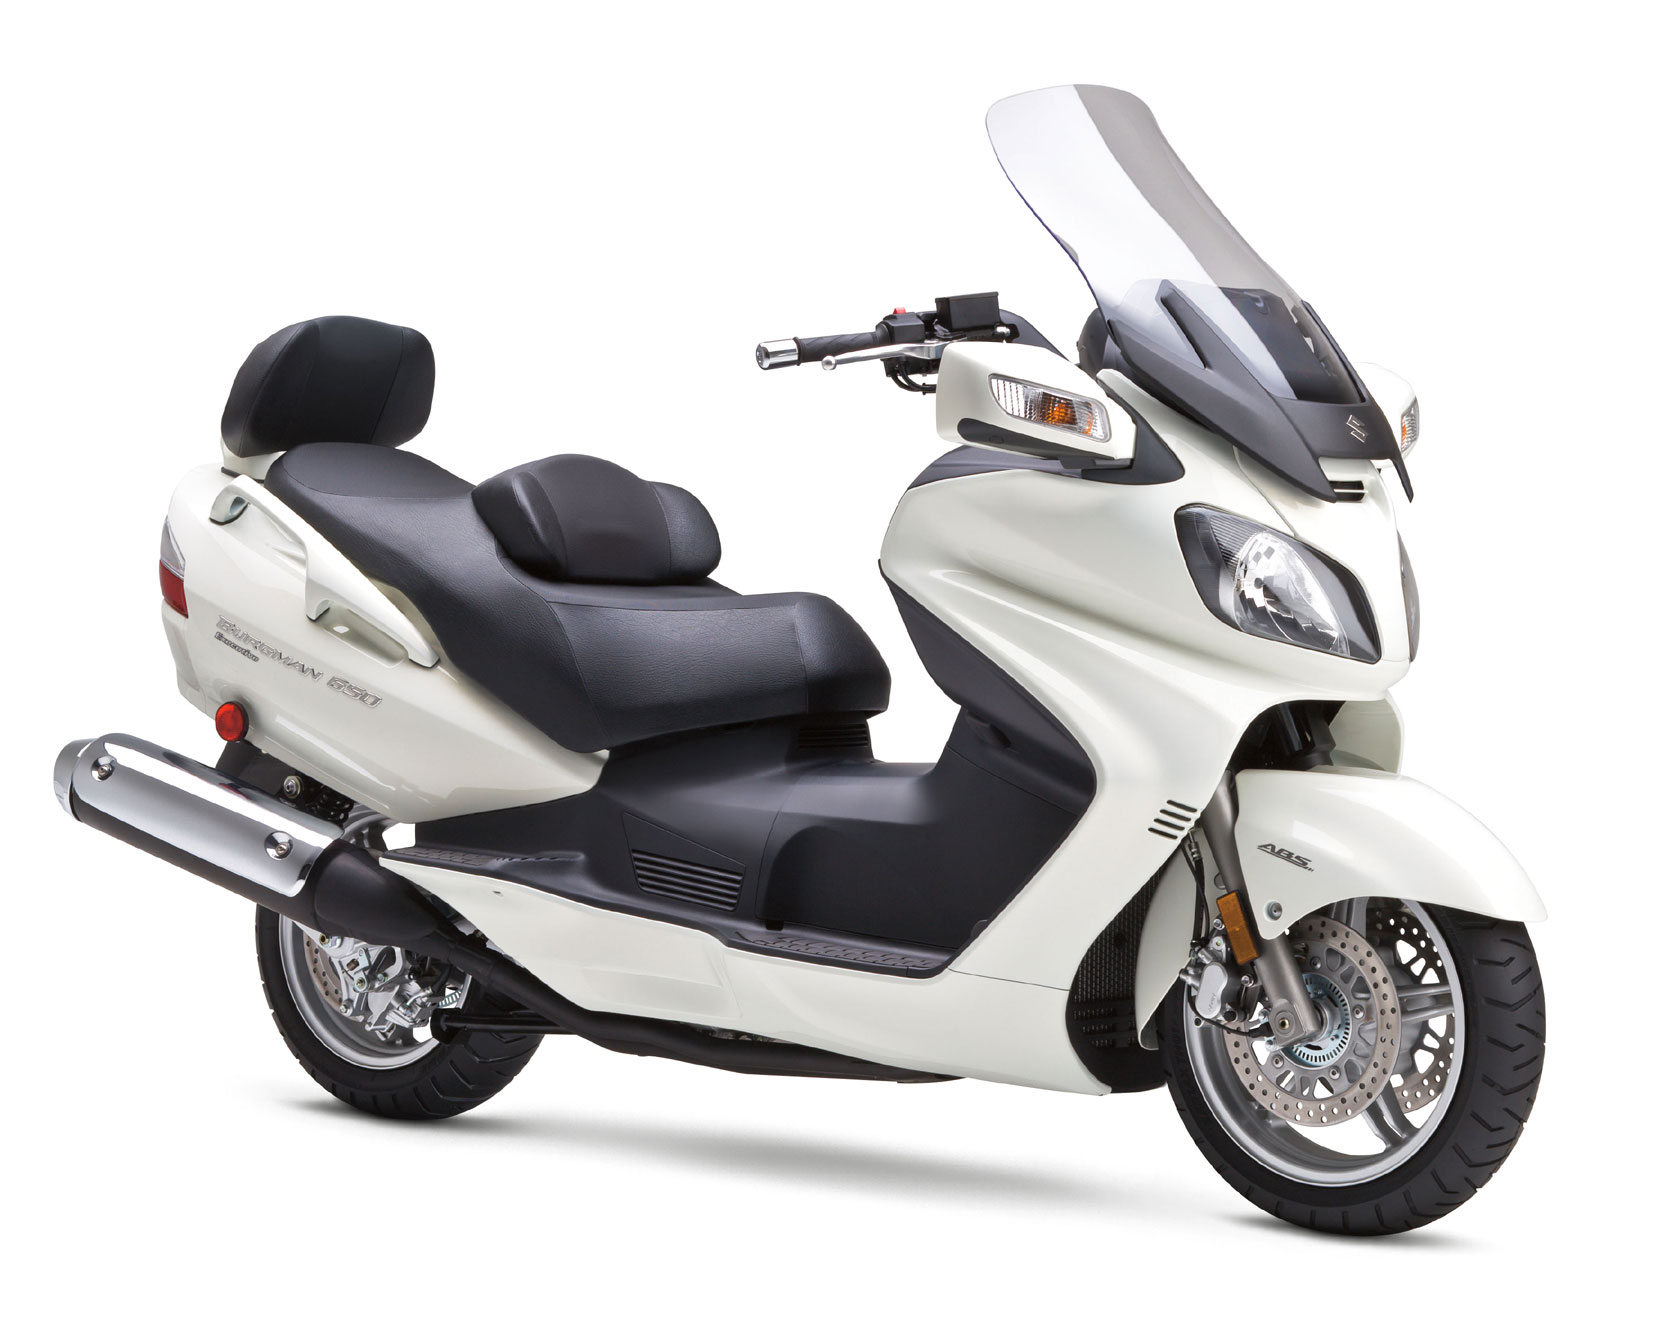 2009 Suzuki Burgman 650 Executive Sporty Scooter